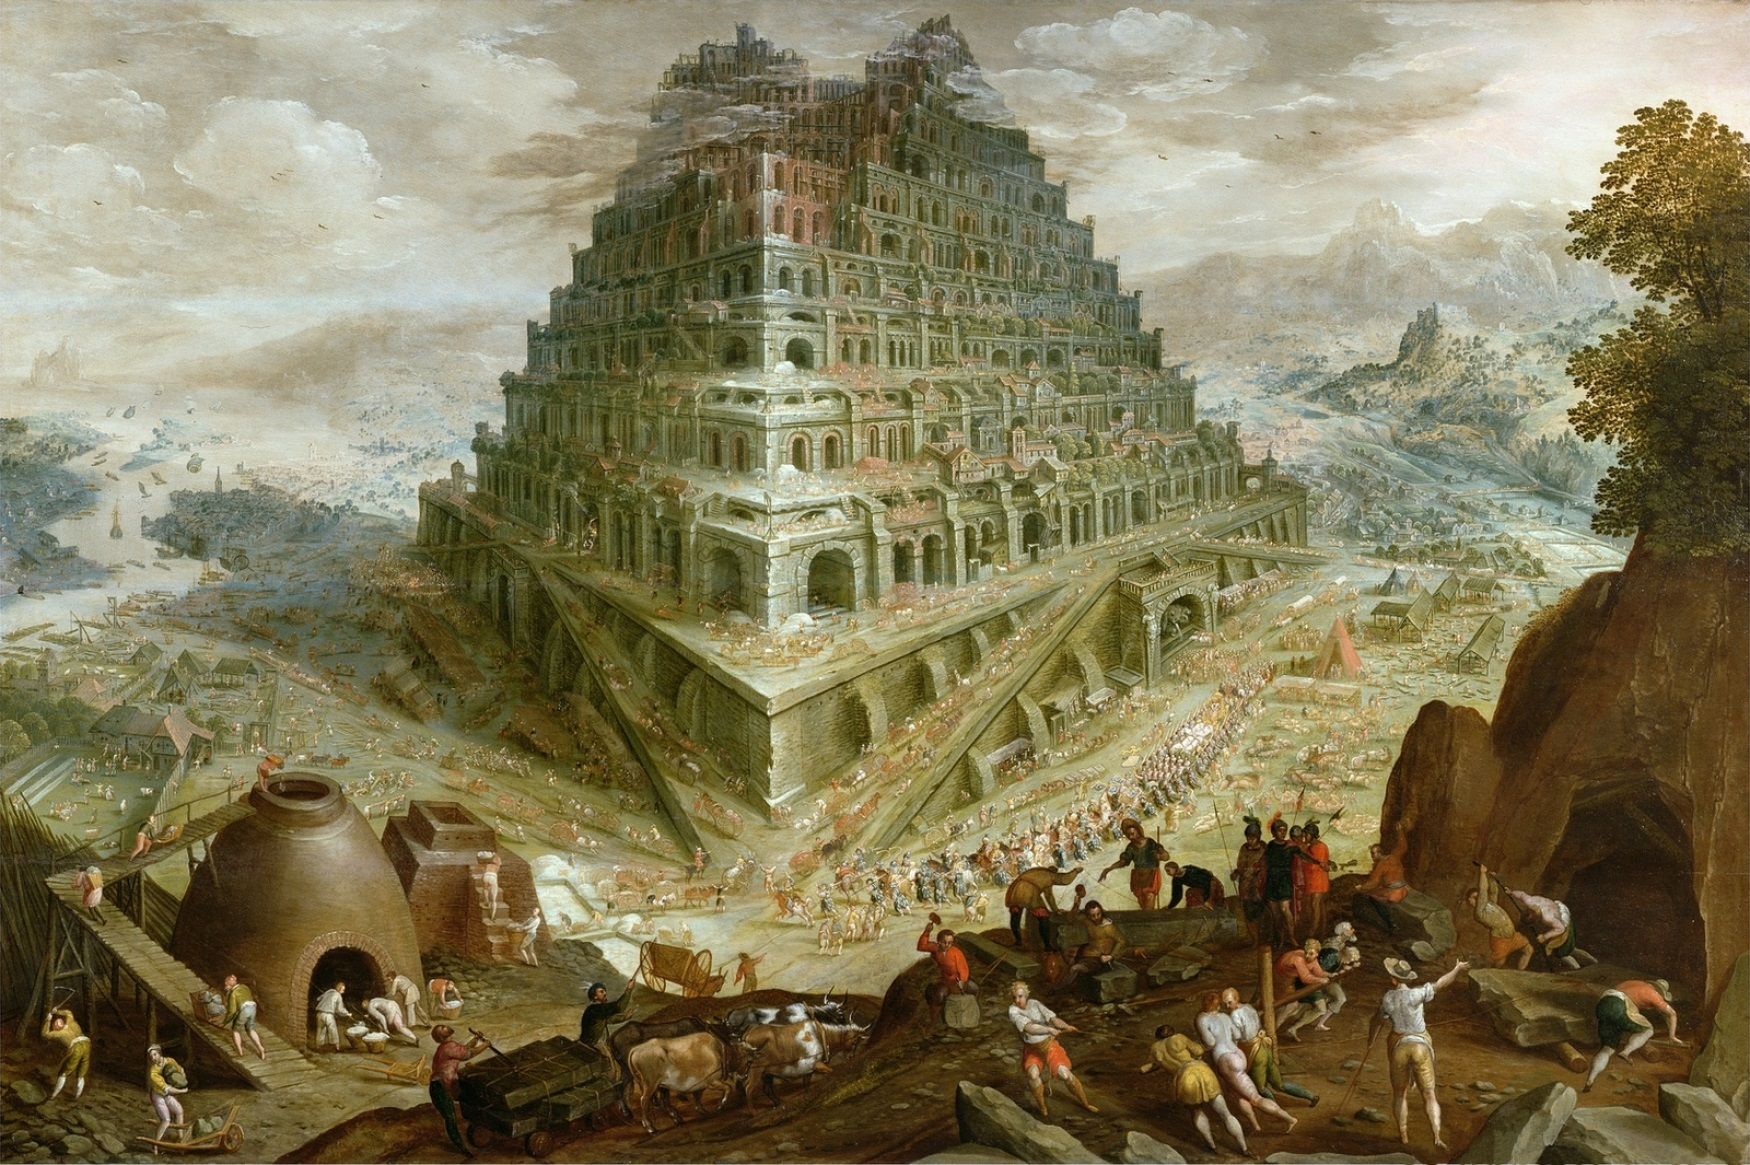 English: Tower of Babel